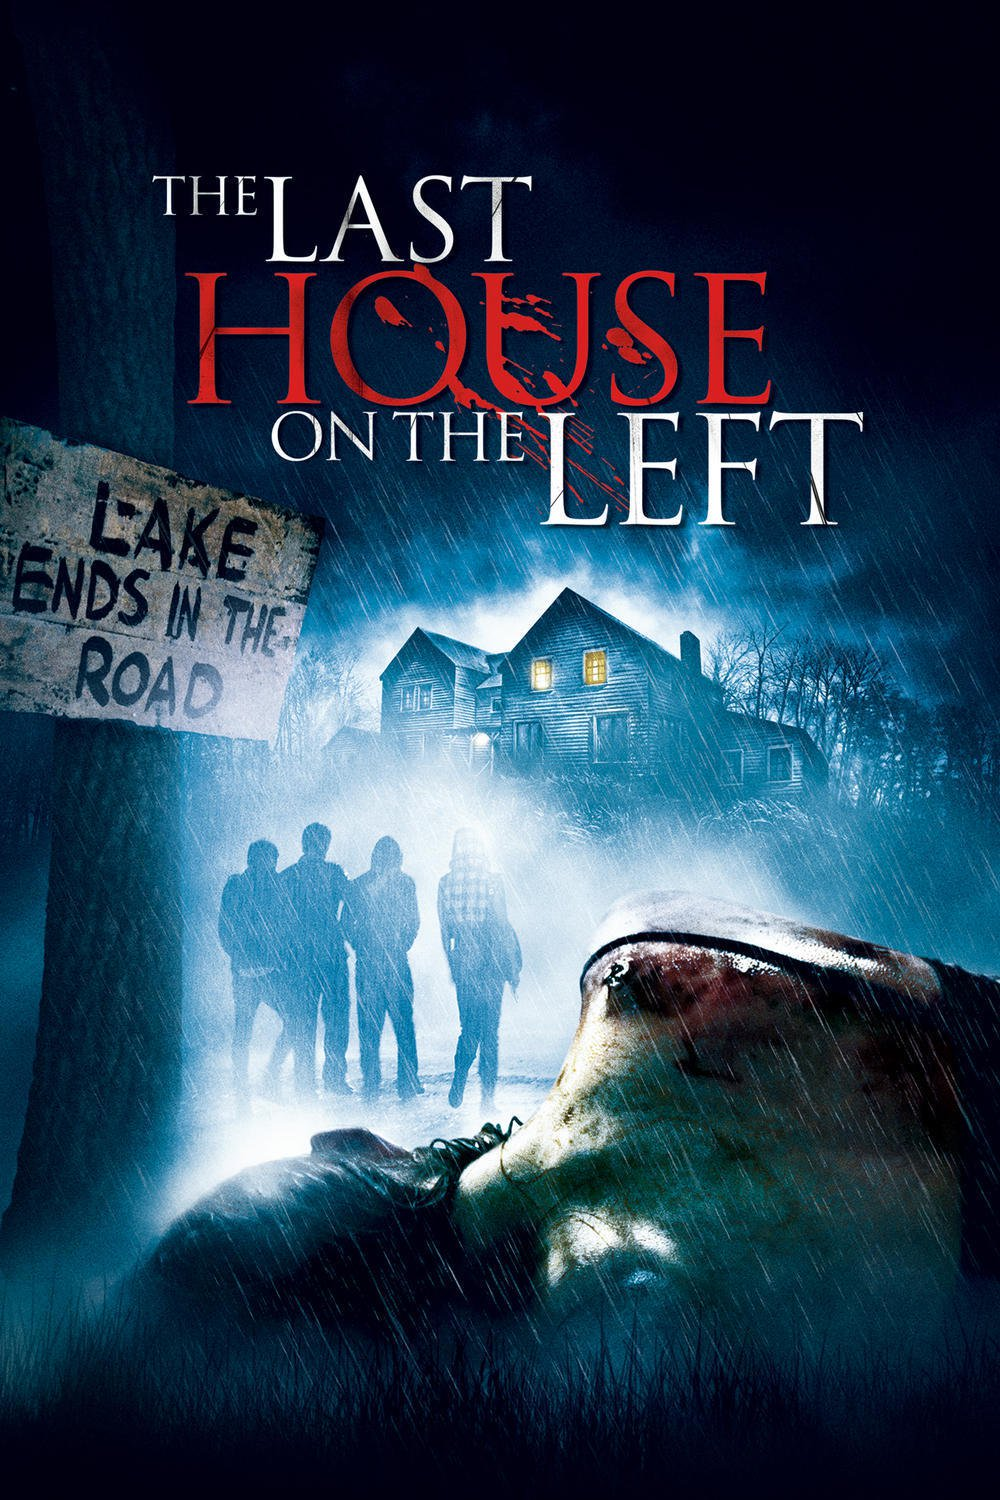 The Last House on the Left, 2009